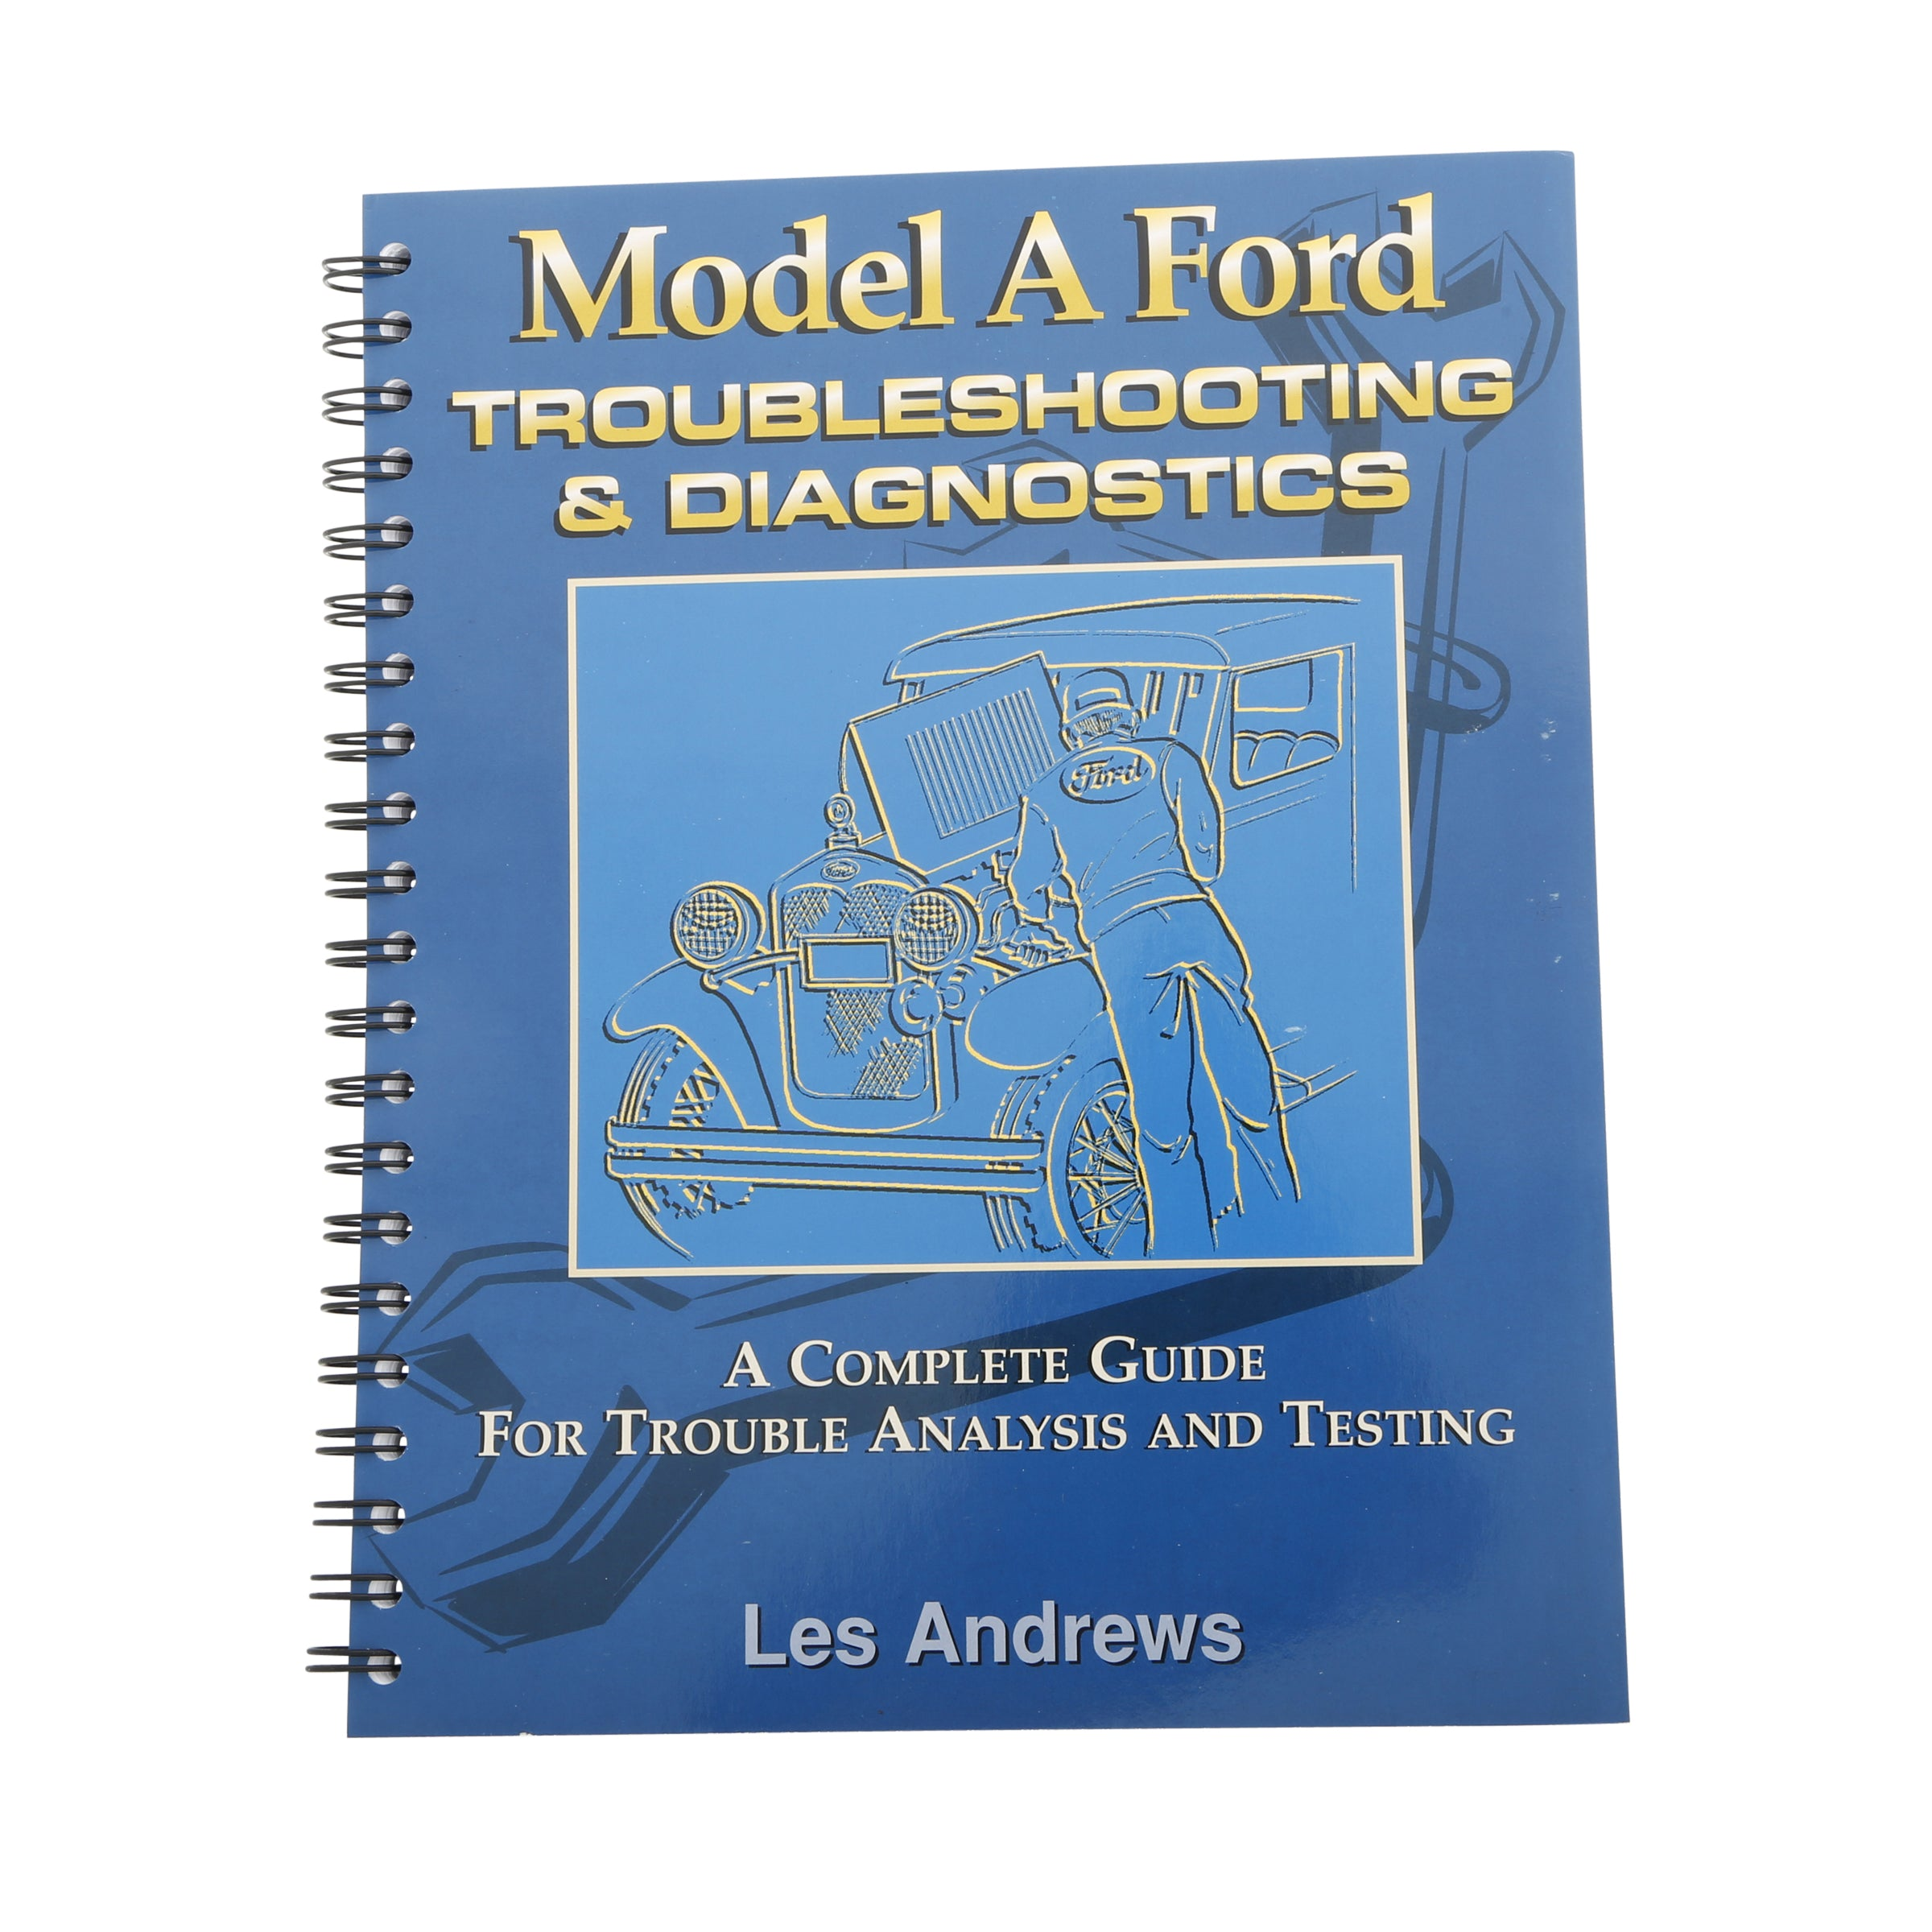 Model A Ford Mechanics Troubleshooting & Diagnostics